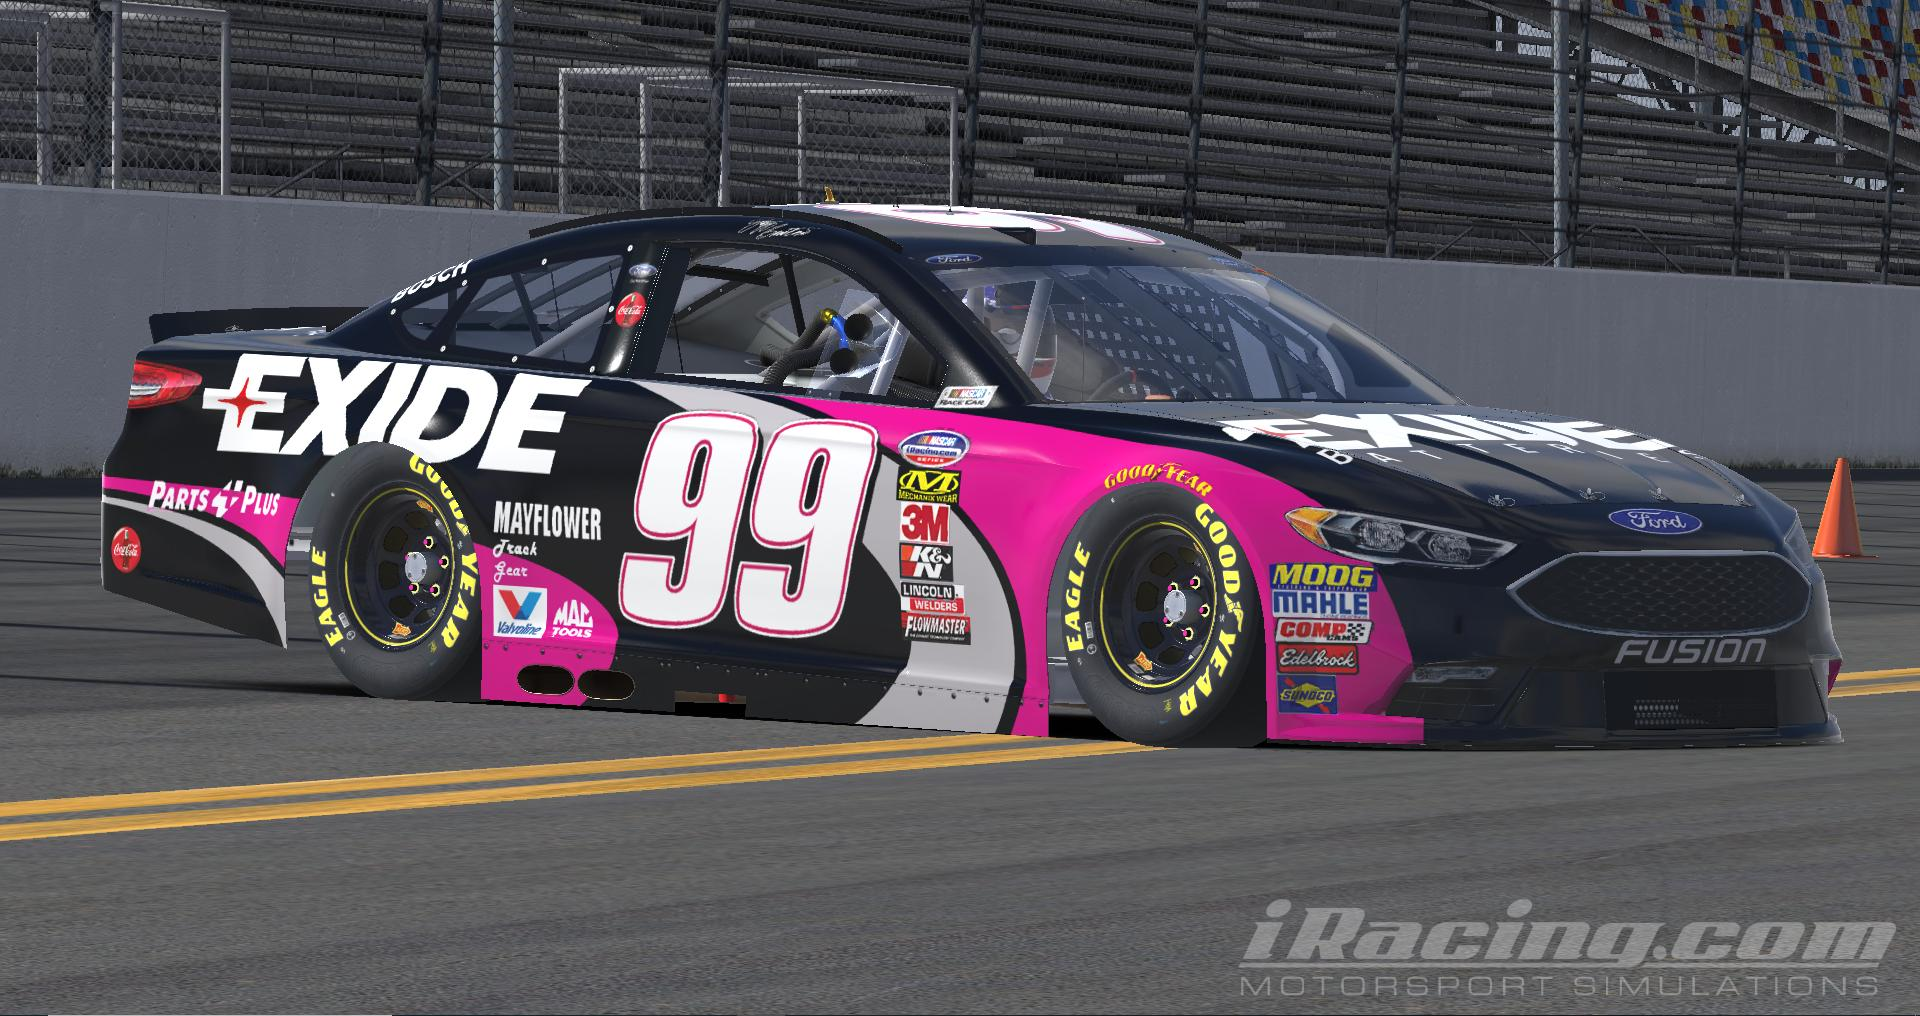 Updates from the Armchair: This Week in iRacing - Dover Speedway